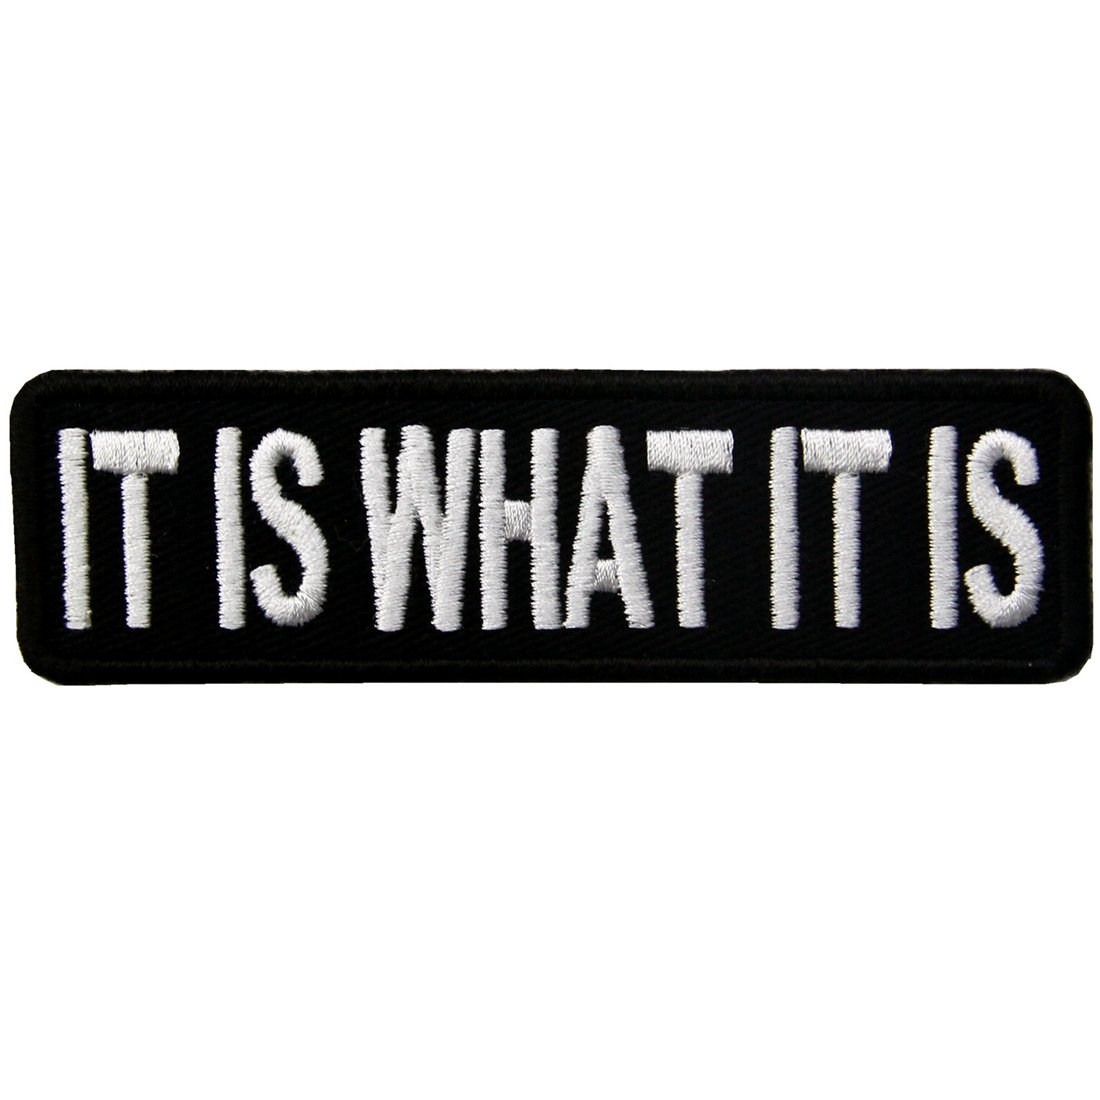 IT IS WHAT IT IS Funny Biker Embroidered Iron On Sew On Patch ZEGIN